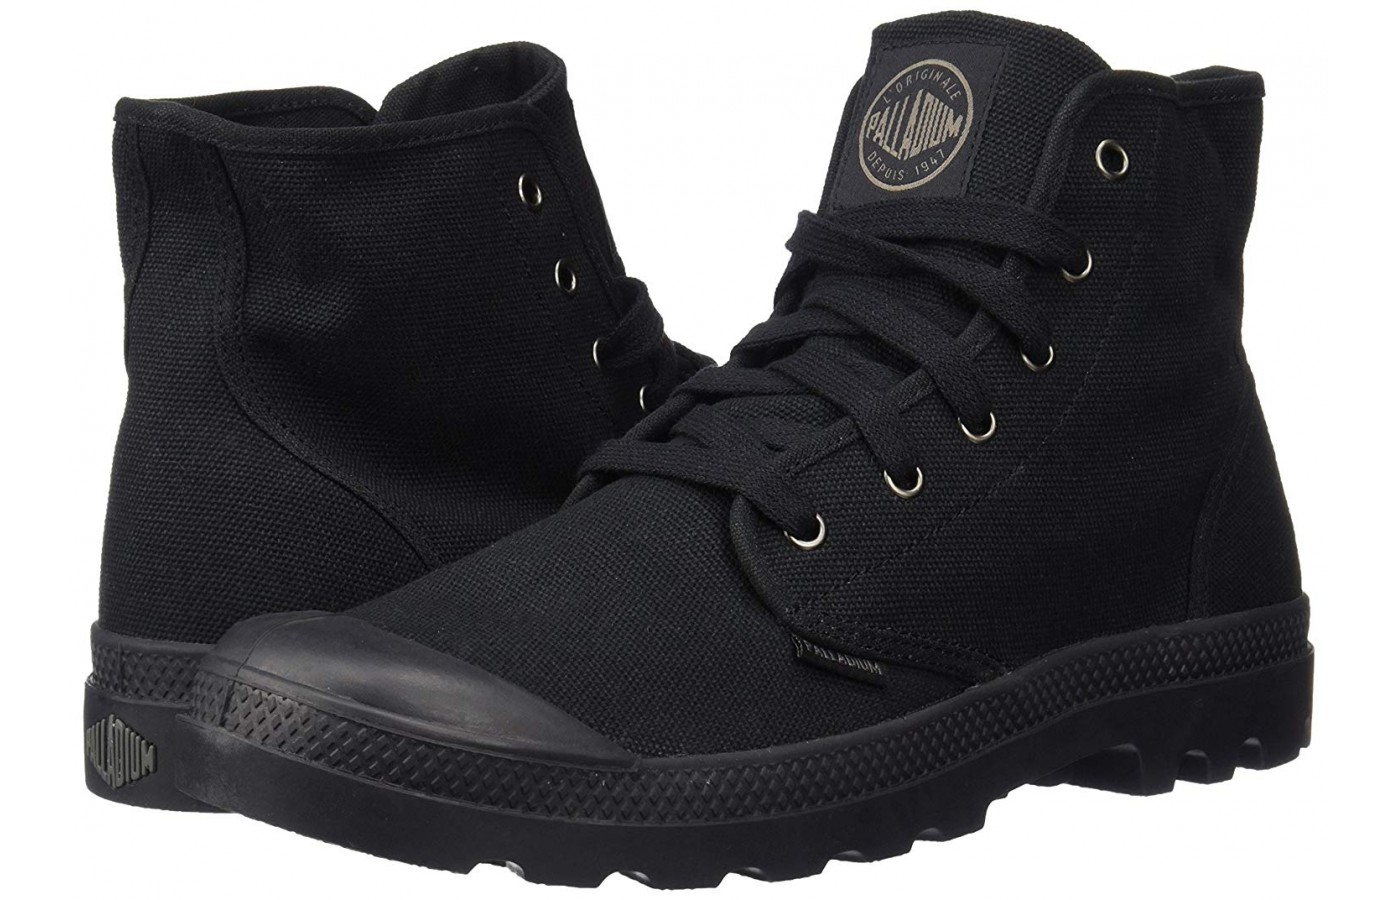 Palladium Pampa Hi a stylish and versatile boot